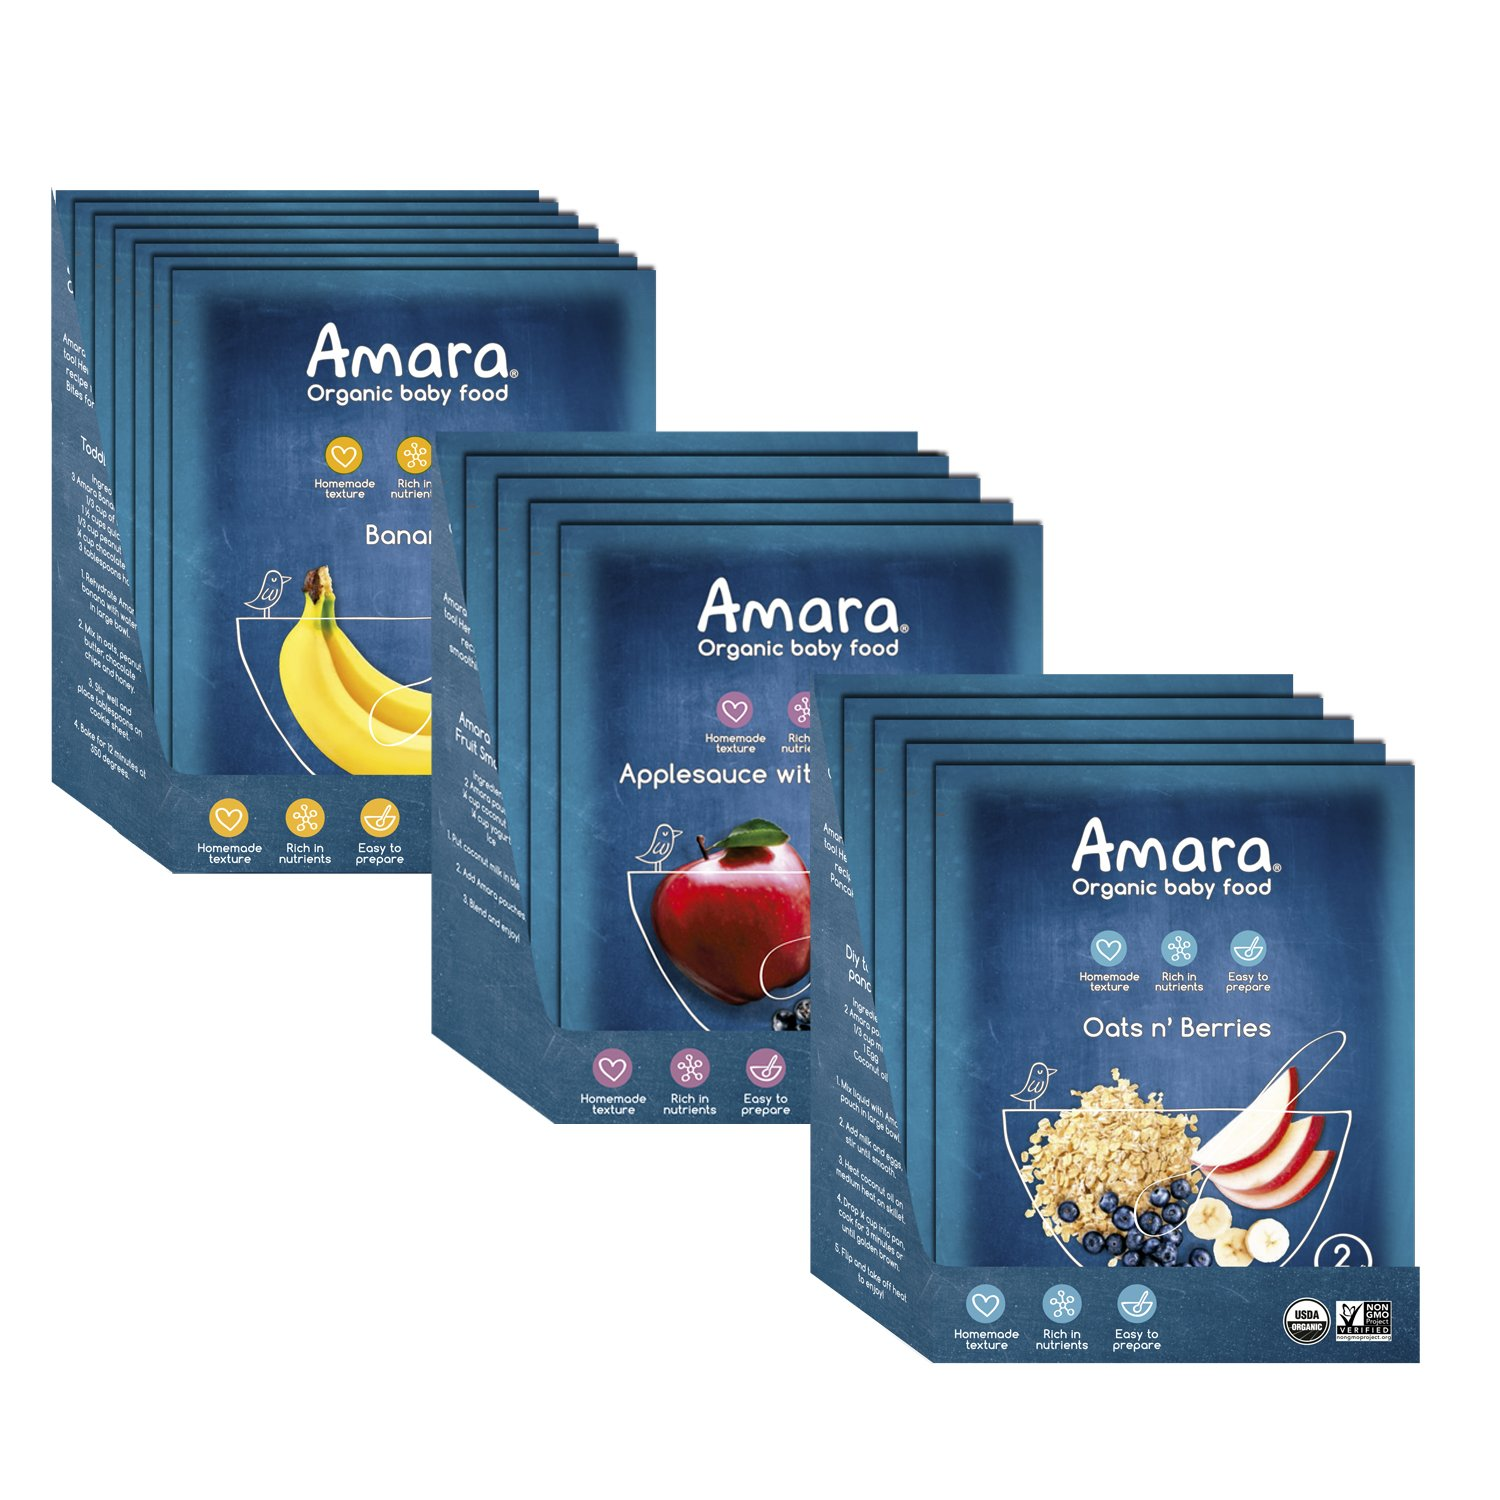 Amara Baby Food, Anti Inflammatory Baby Food Pack for Healthy Digestion, Helps Promote Healthy Tummy, Stage 1 & 2 Fruits and Veggies, No Additives (17 Pouches)